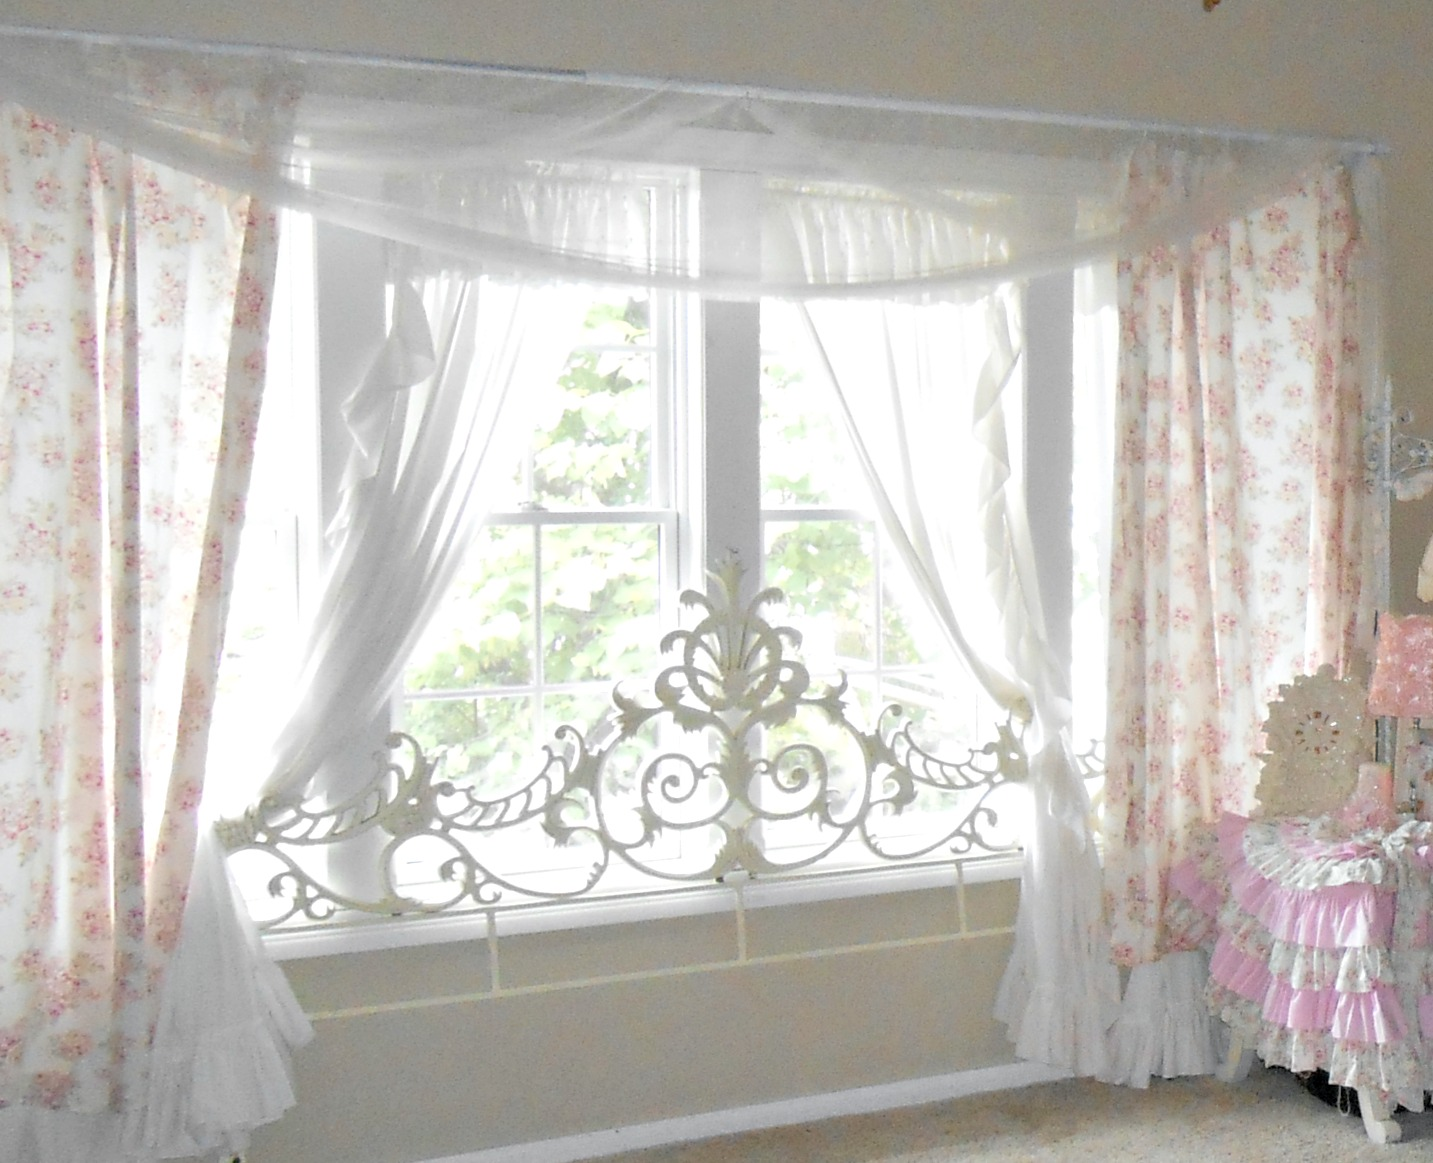 Olivia 39 S Home Shabby Chic Living Room For How To Make Curtains